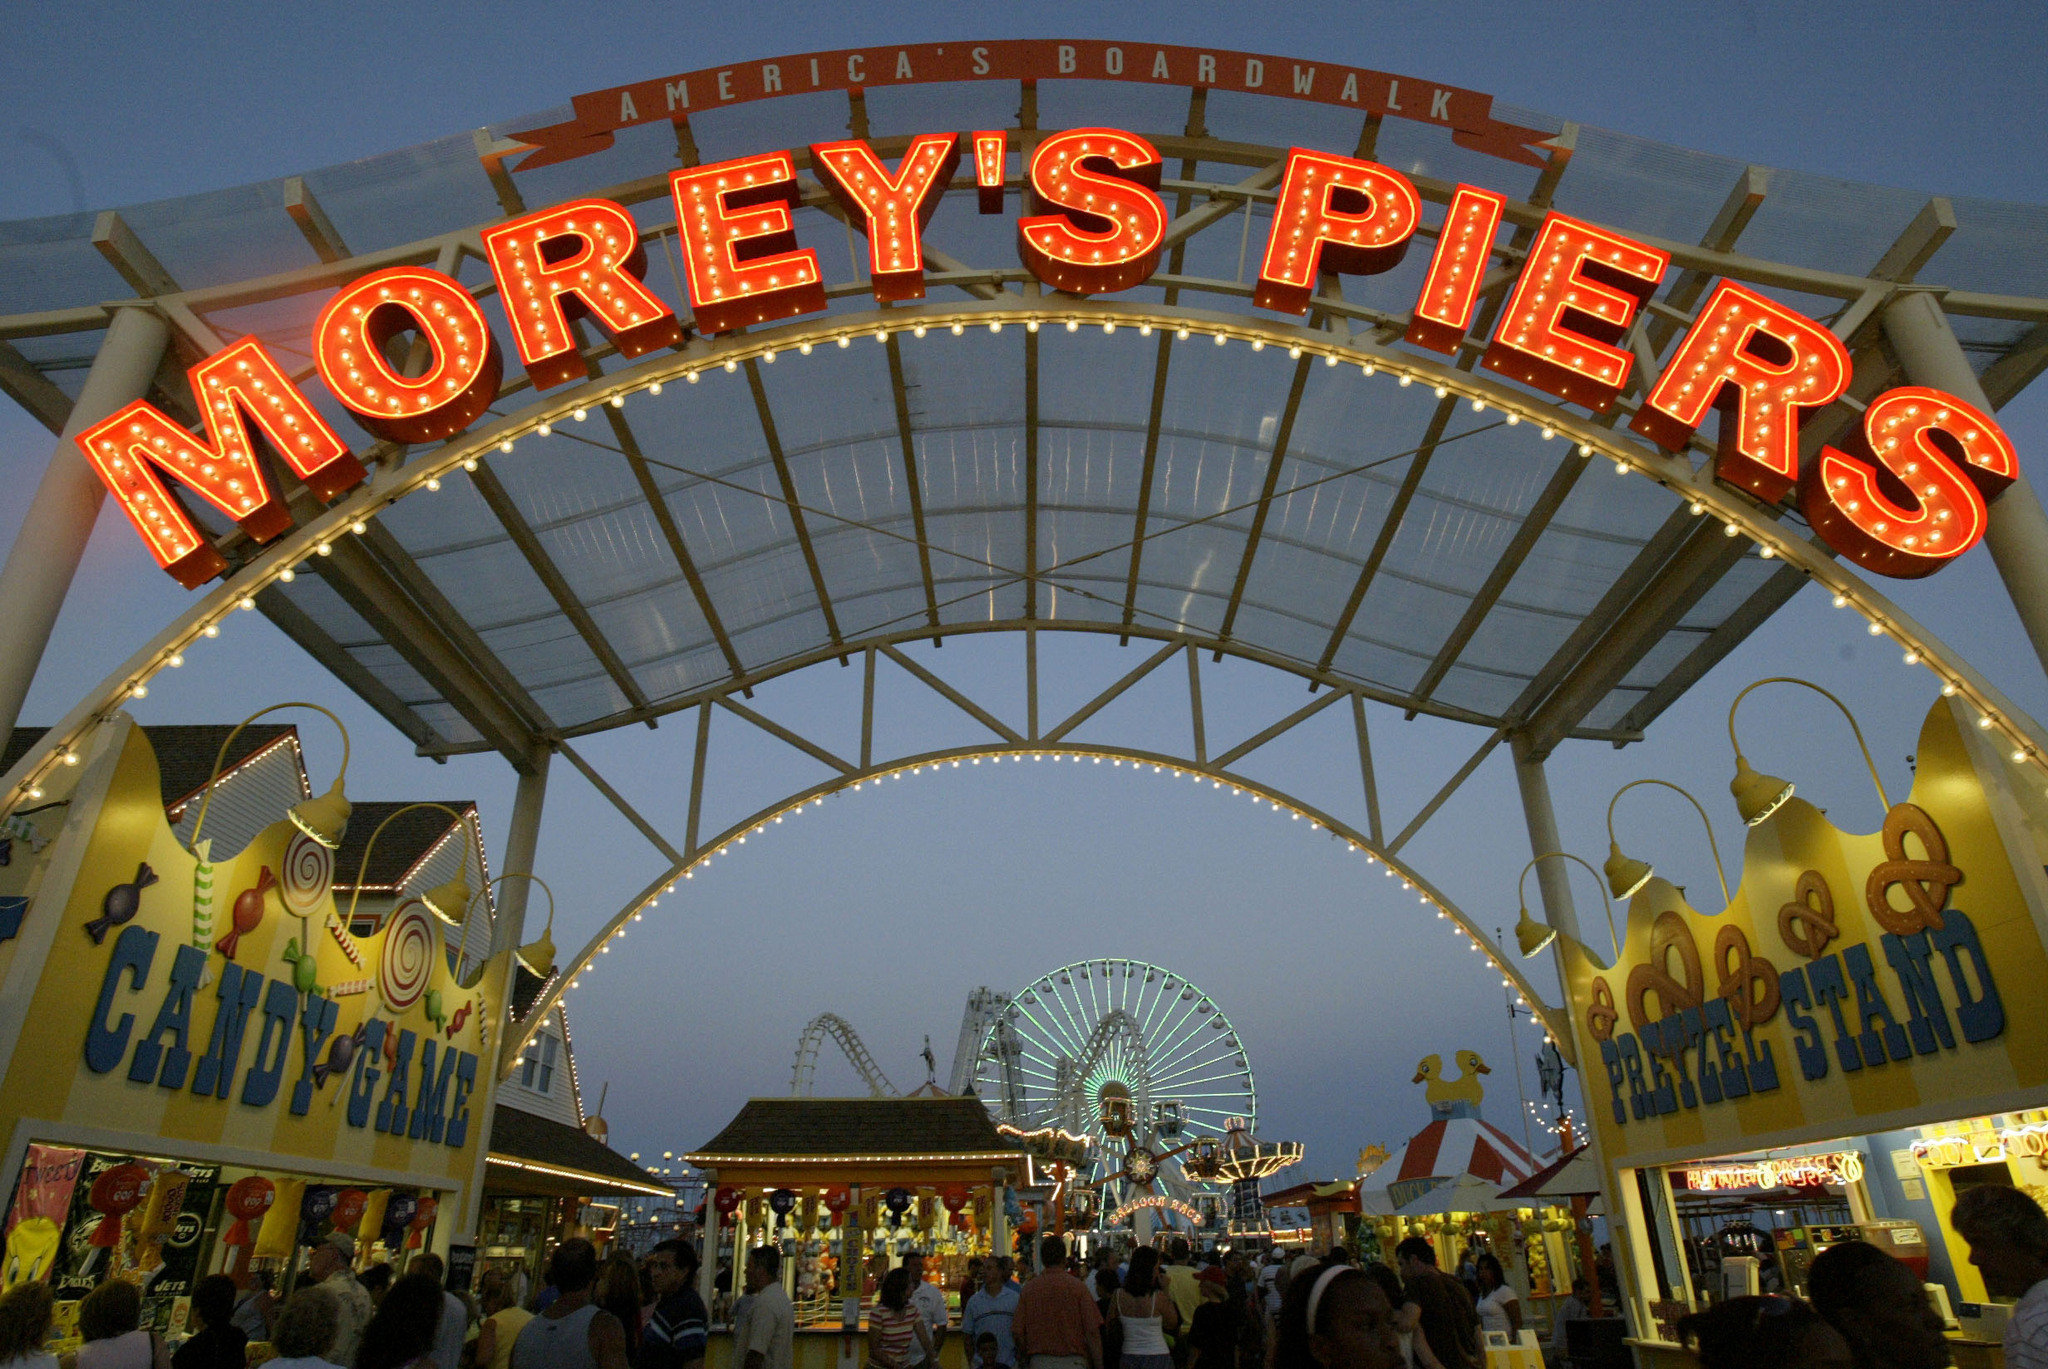 Been going to Morey's piers since I was in the womb. Couldn't think of a better vacation spot for my family and I. I go here every summer and there's always something to do.